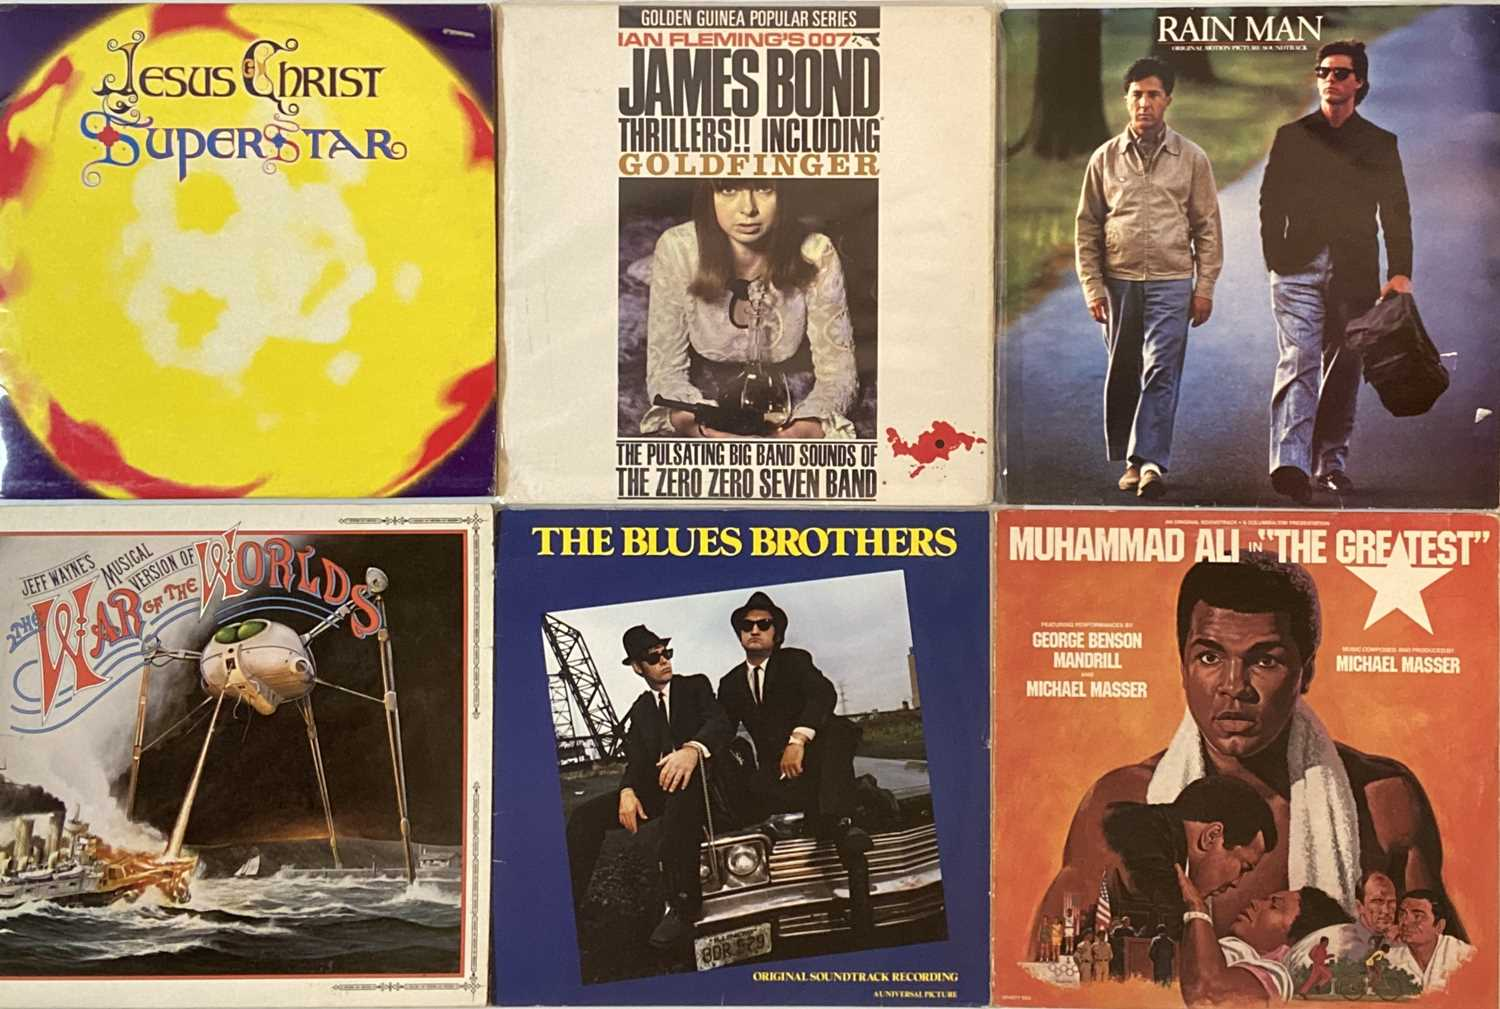 SOUNDTRACKS/ STAGE & SCREEN/ COMEDY/ SPOKEN WORD - LPs - Image 3 of 5